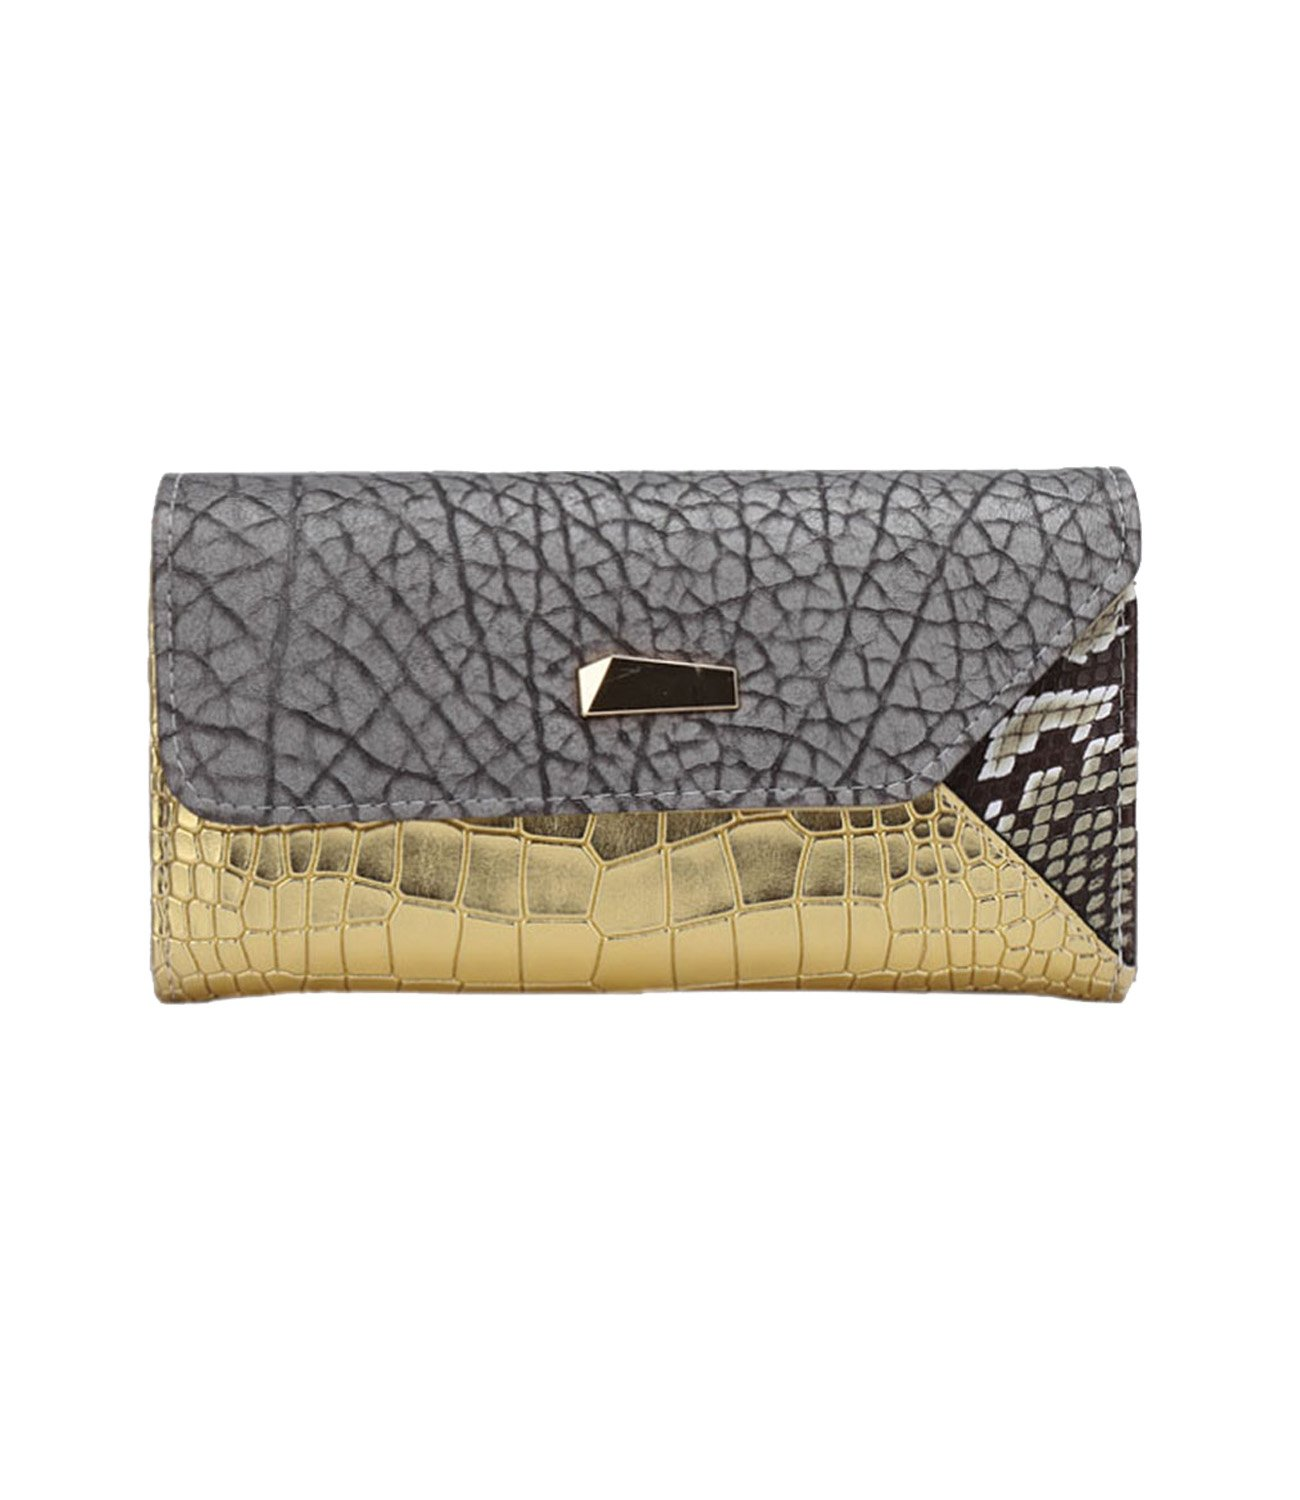 DOBRING Women's top fashion classical style wallet purse card holder